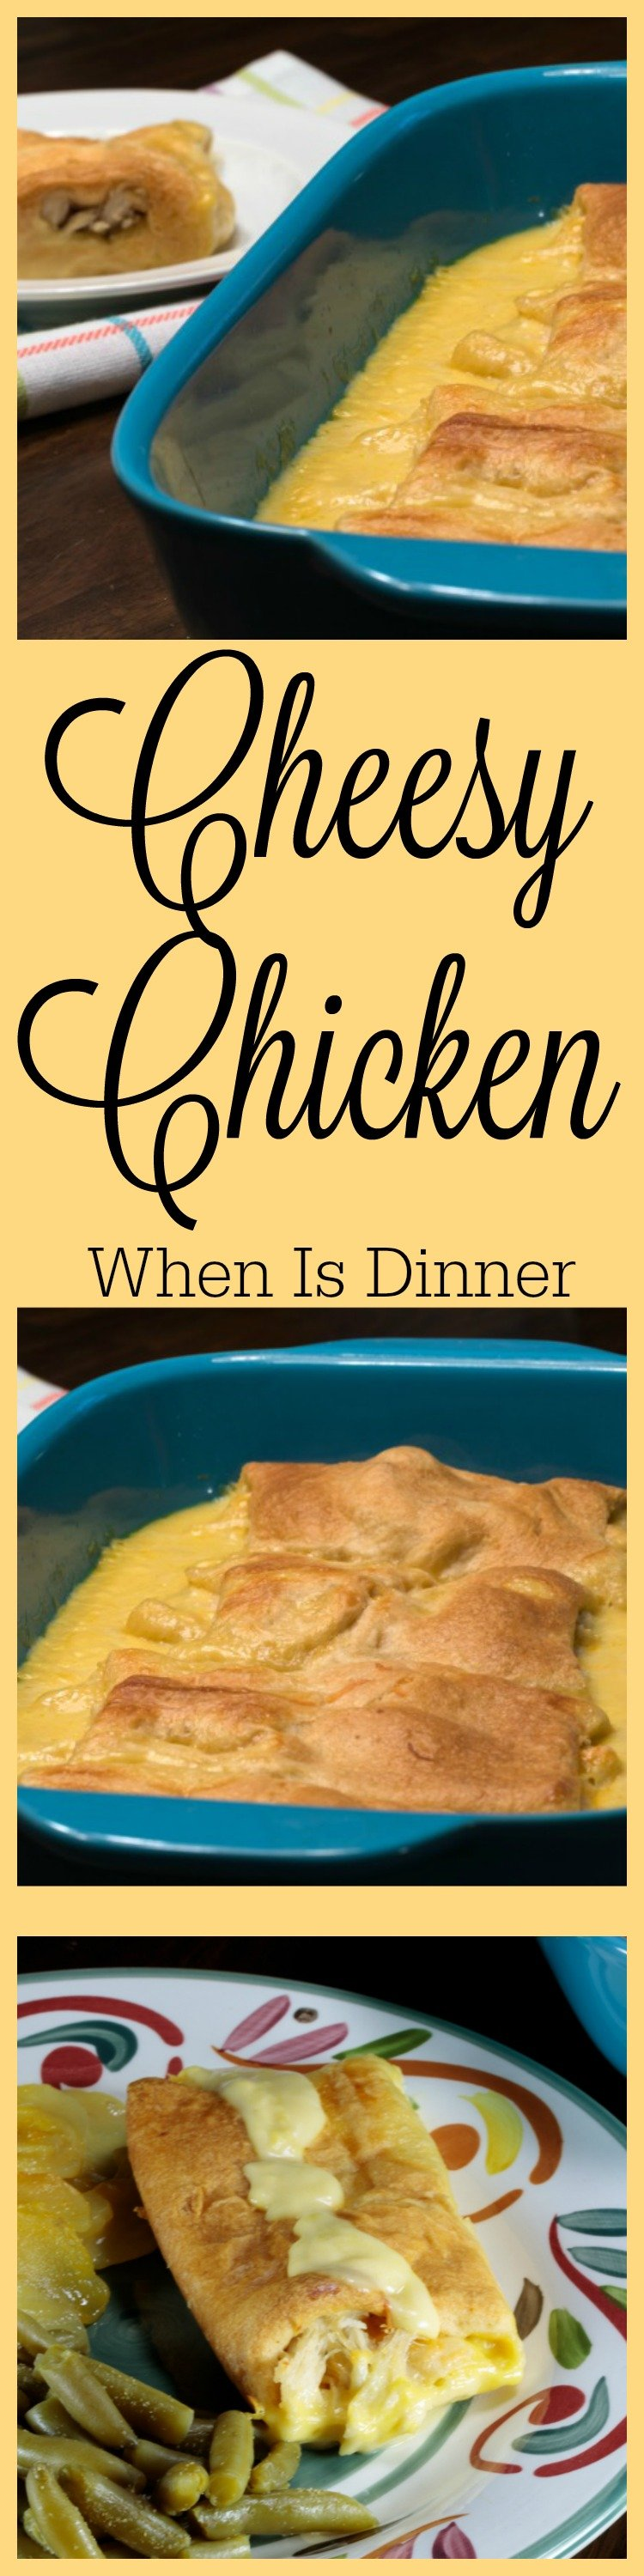 This Cheesy Chicken Crescent Roll Recipe is quick and easy to make. It has 5 ingredients and is ready in under 30 minutes. Delicious!!!